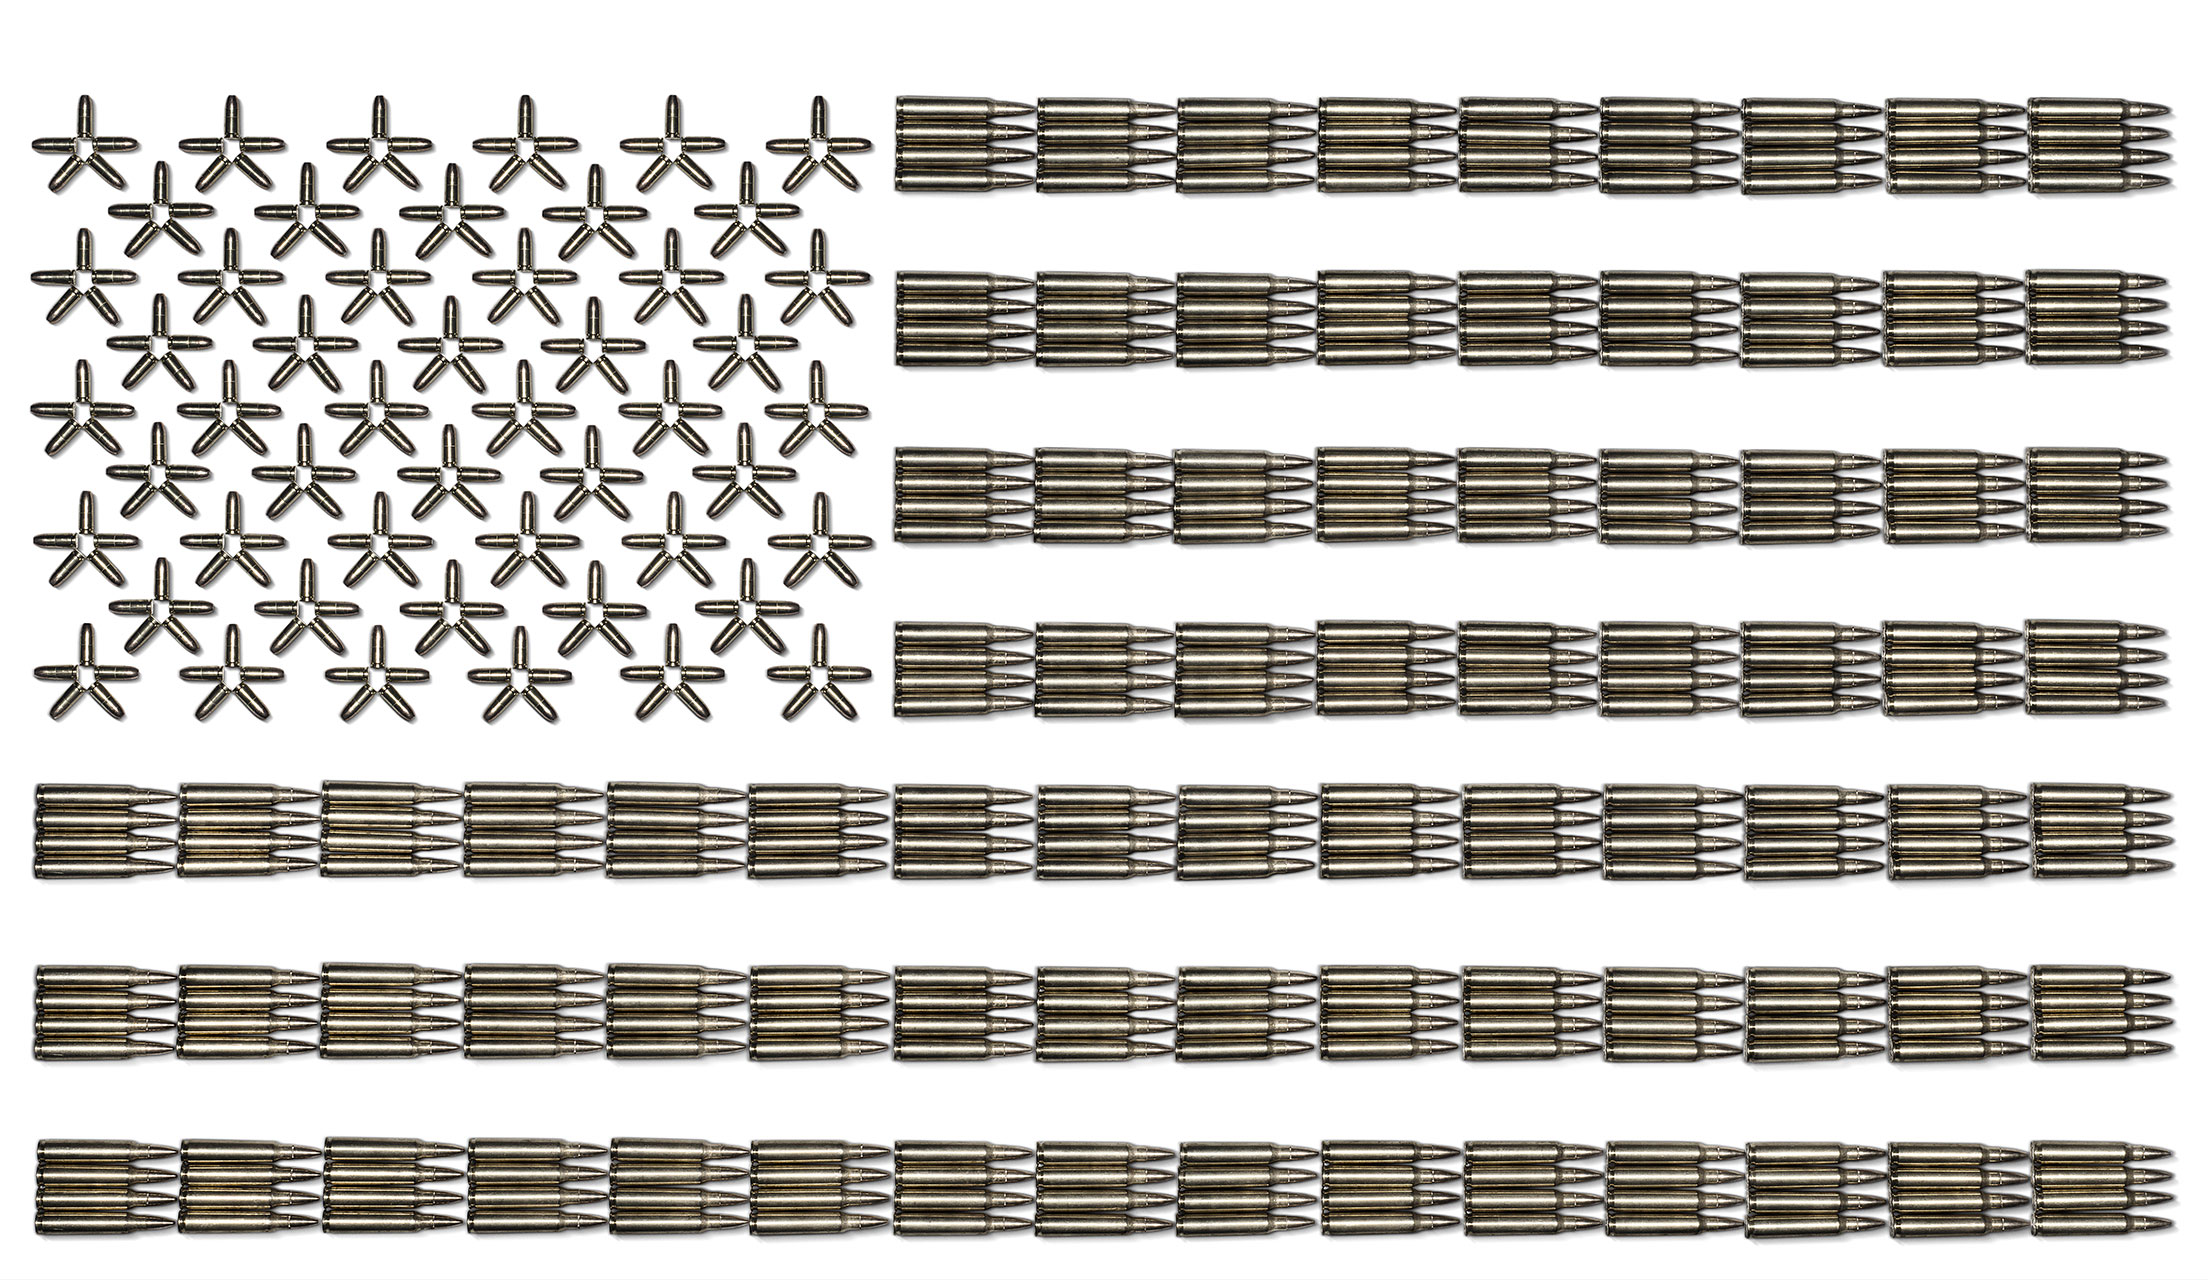 Bullets_Flag_White_JG8